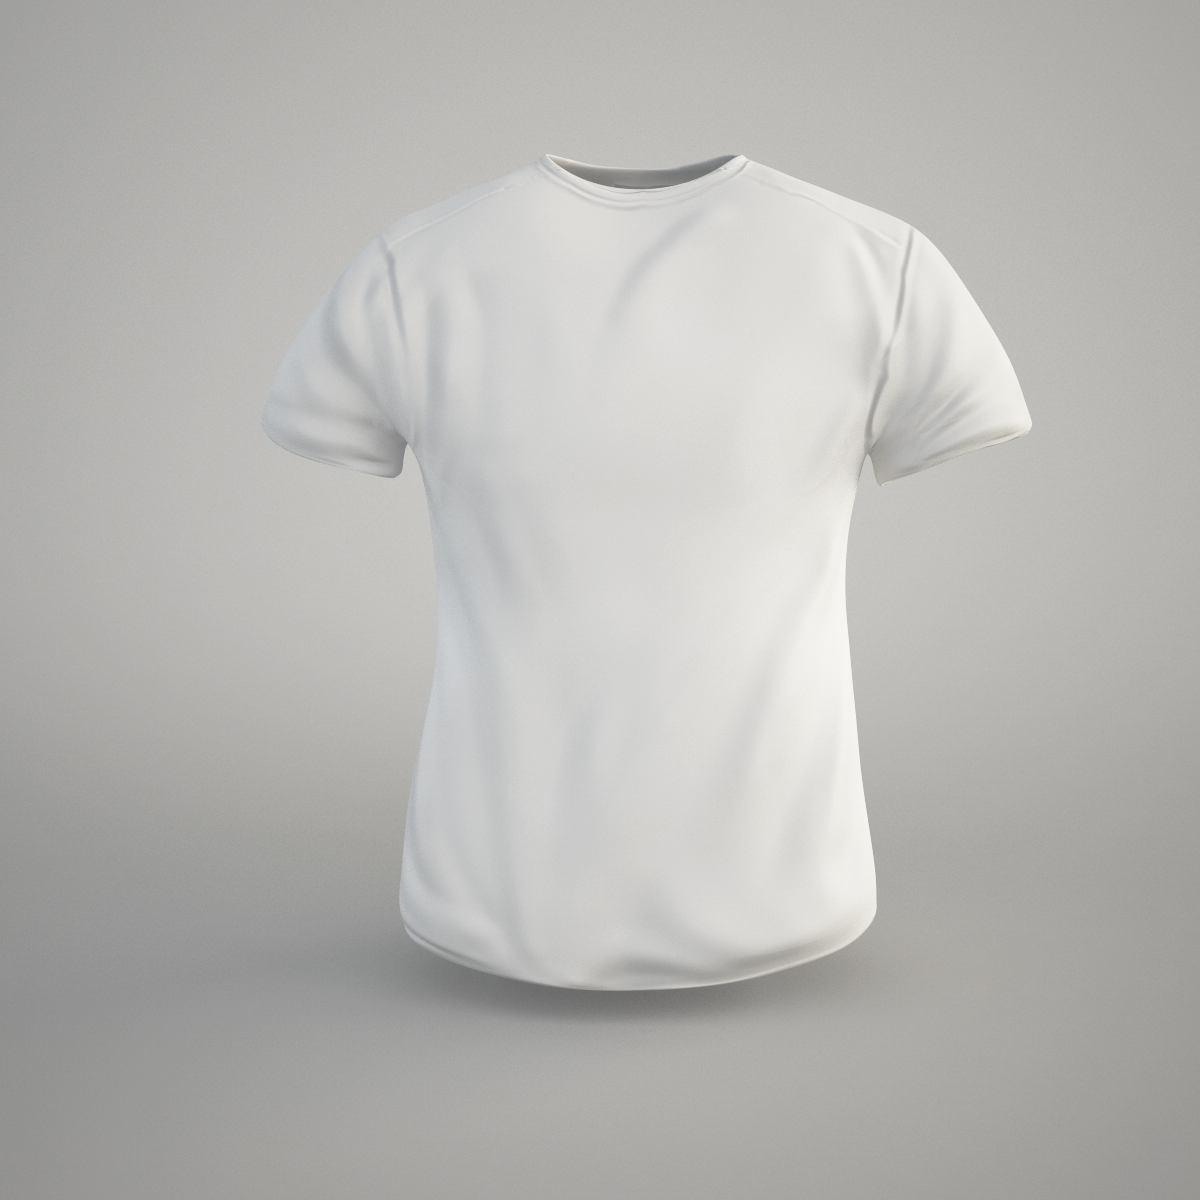 T Shirt 3d Model Game Ready Obj Fbx C4d Cgtrader Com